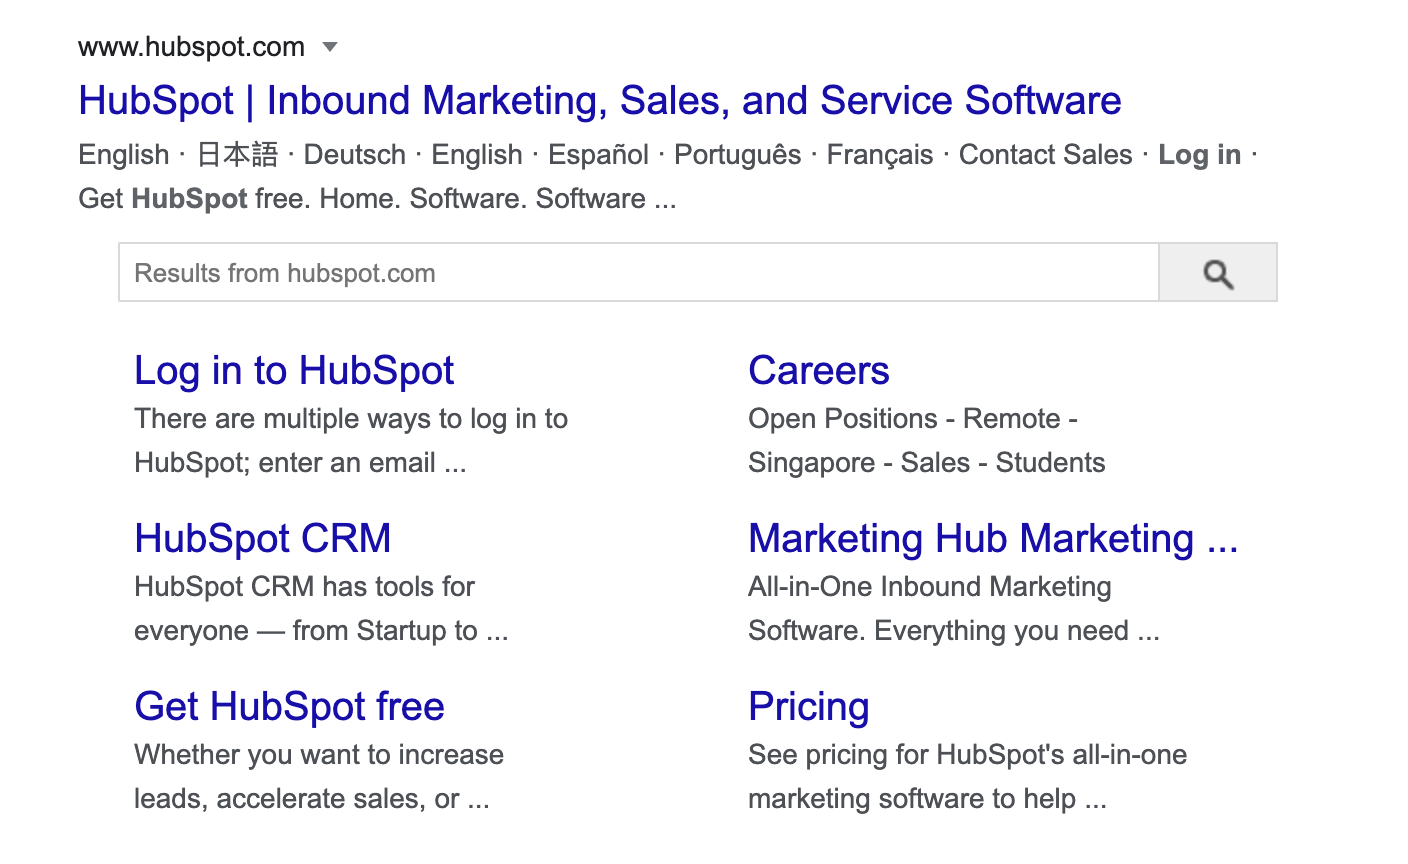 serp for the hubspot signup query